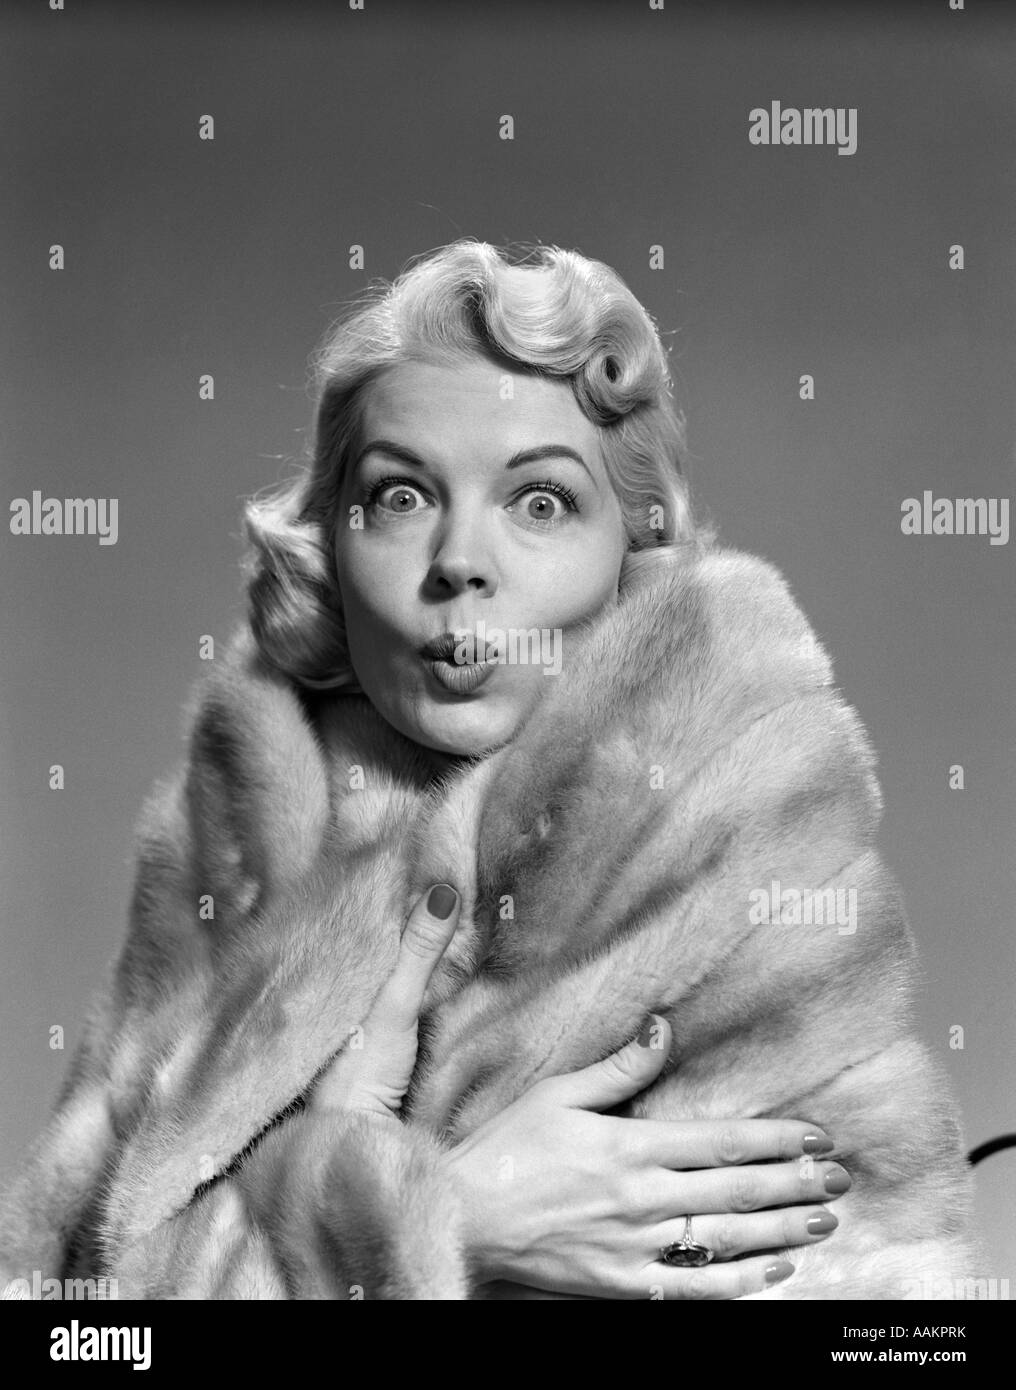 1950s WOMAN WRAPPED IN FUR STOLE MAKING FUNNY FACIAL EXPRESSION LOOKING AT CAMERA - Stock Image